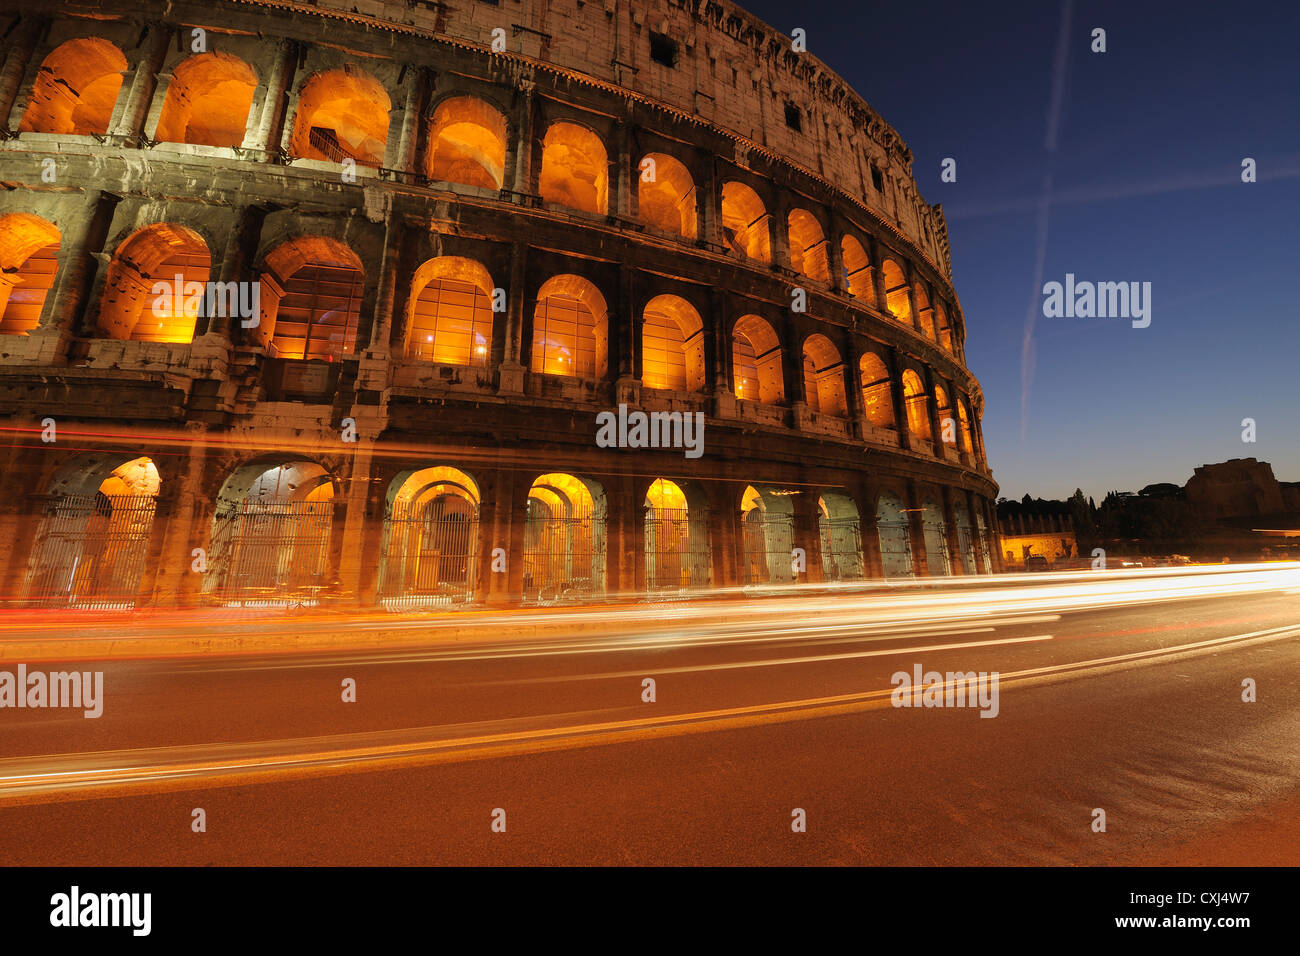 Europe, Italy, Rome, View of colosseum at night - Stock Image